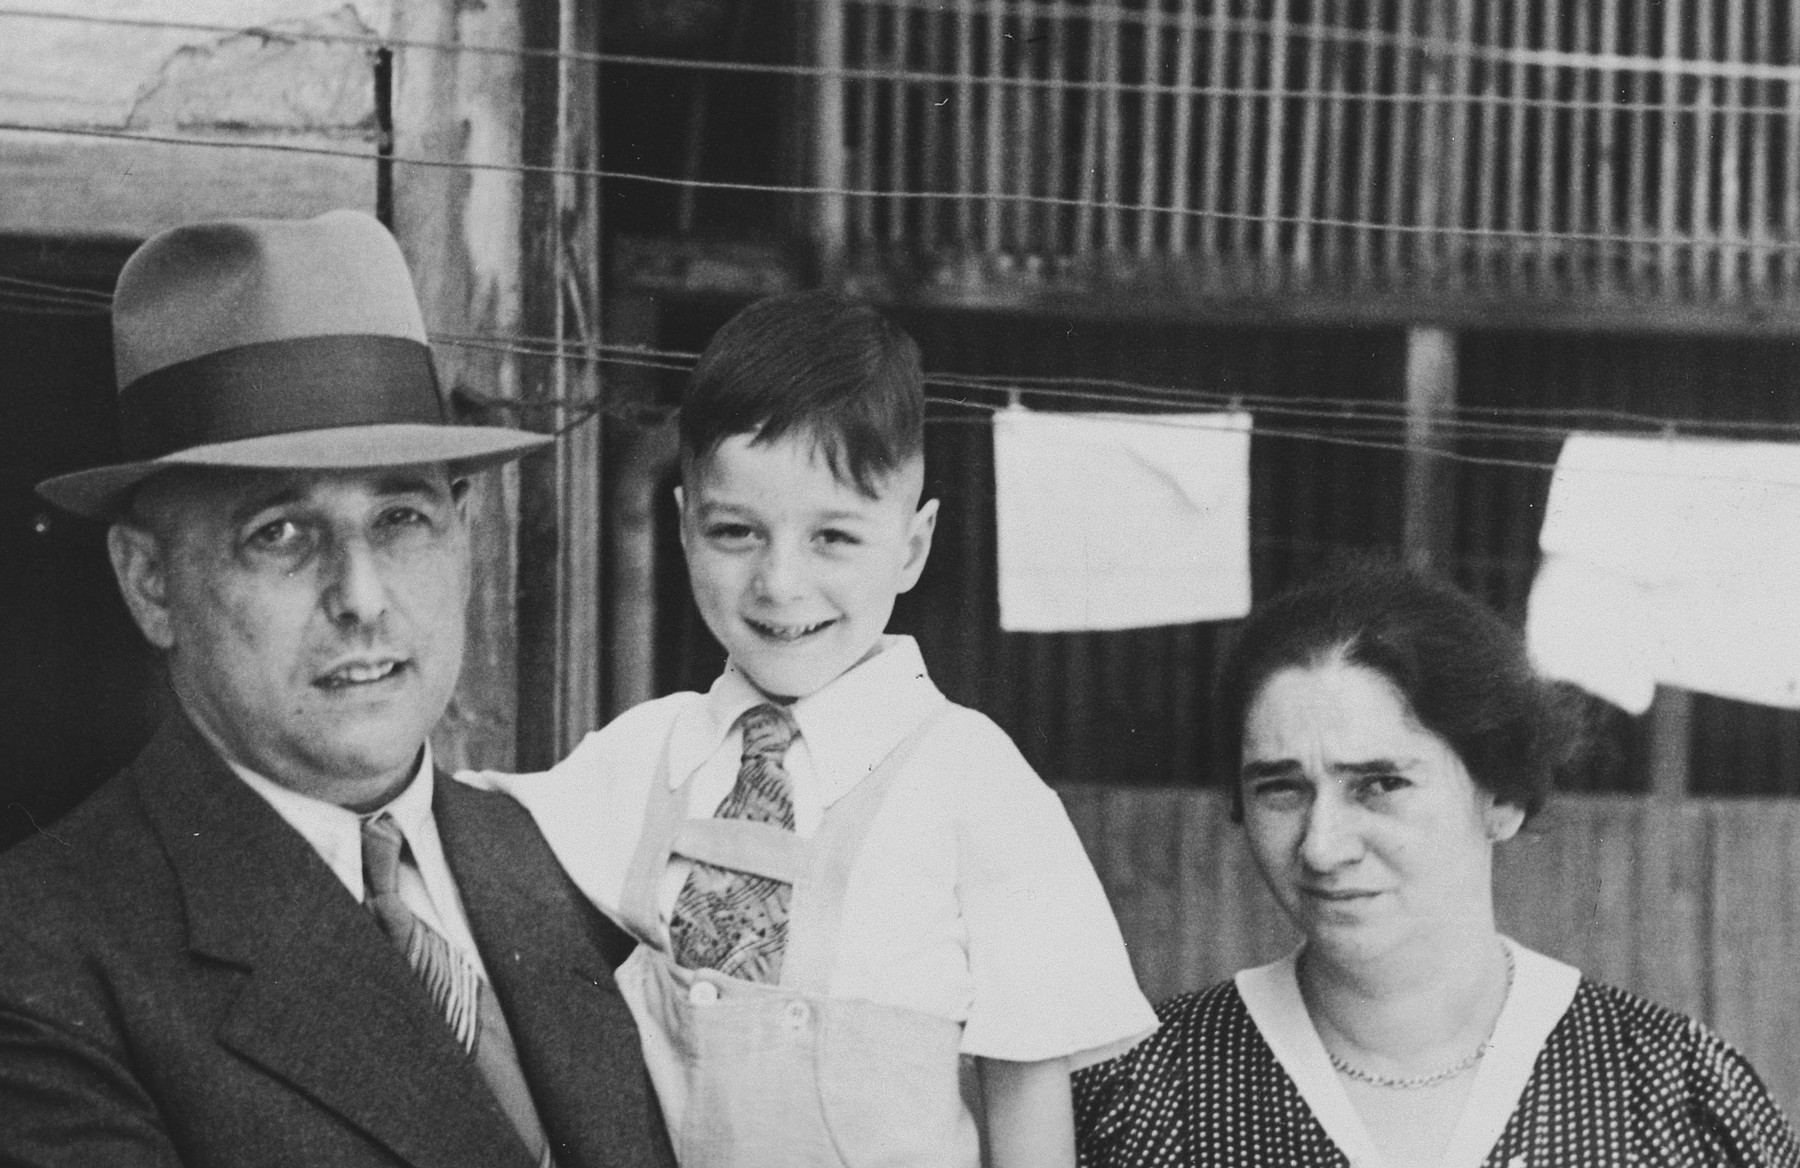 Close-up portrait of a Jewish family in Breisach, Germany.  Pictured are Hugo, Arno and Hulda Geismar.  Hulda was born on July 7, 1899.  Hugo was born in Breisach on March 27, 1890.  Arno was the last Jewish child to be born in Breisach in 1932.  The family escaped to the United States.  This is part of series of photographs taken of the Breisach Jewish community on their way to and from synagogue in 1937.  In October 1940 the entire community was deported to the Gurs internment camp in southern France.